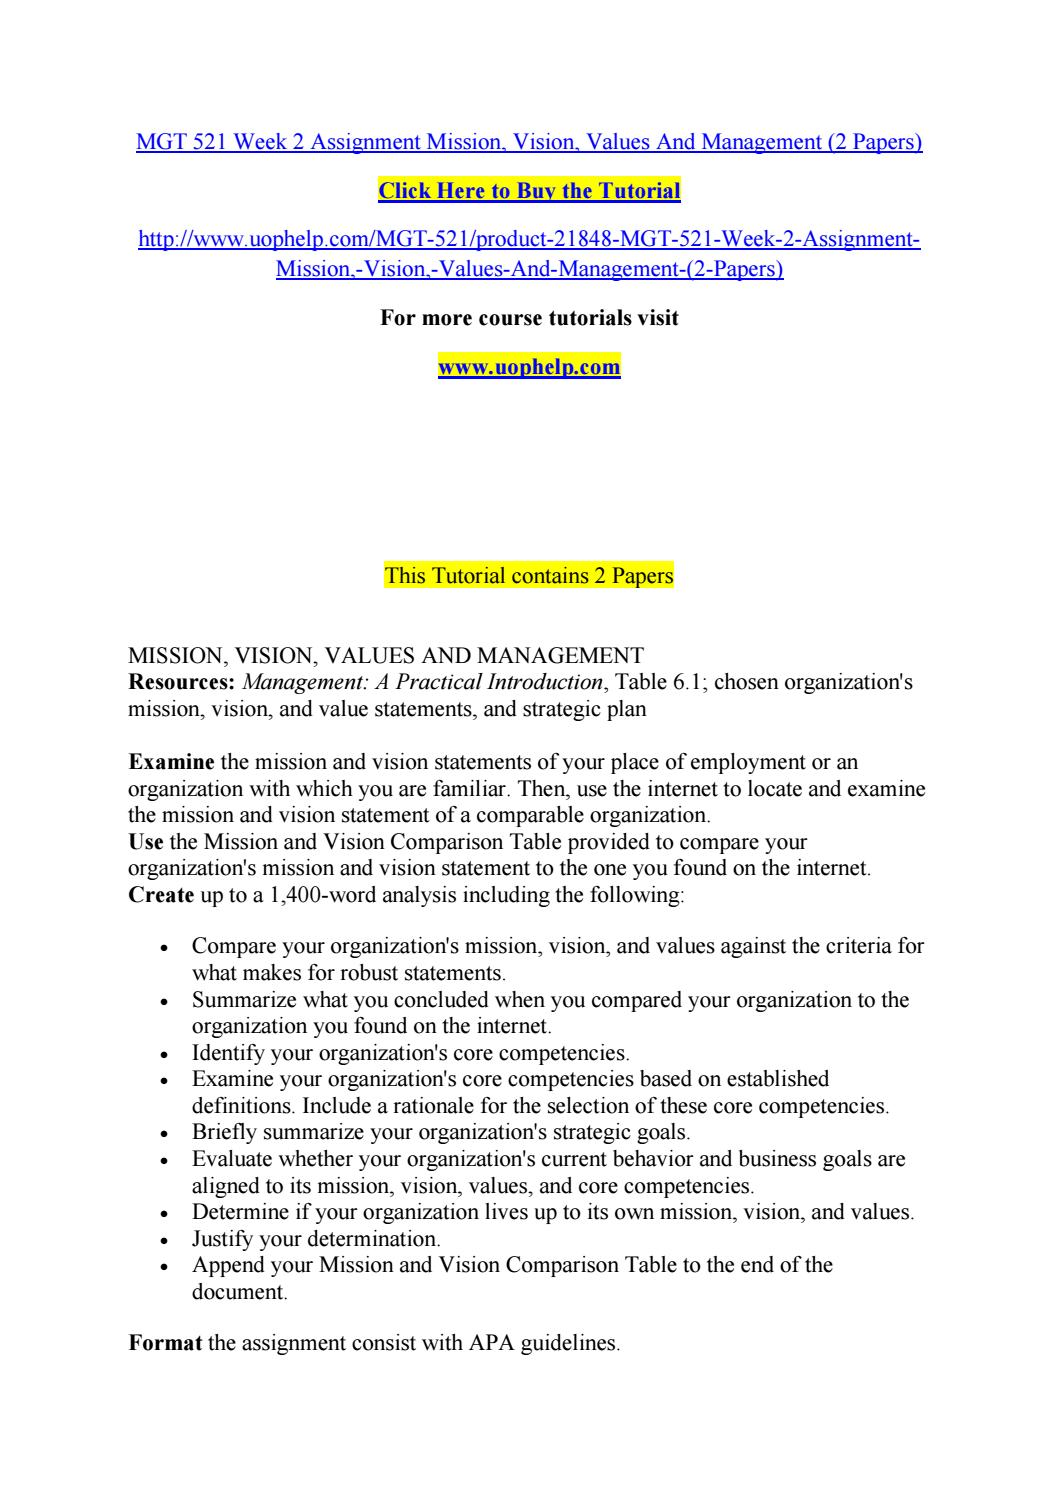 Cover letter in email or attachment 2012 image 4